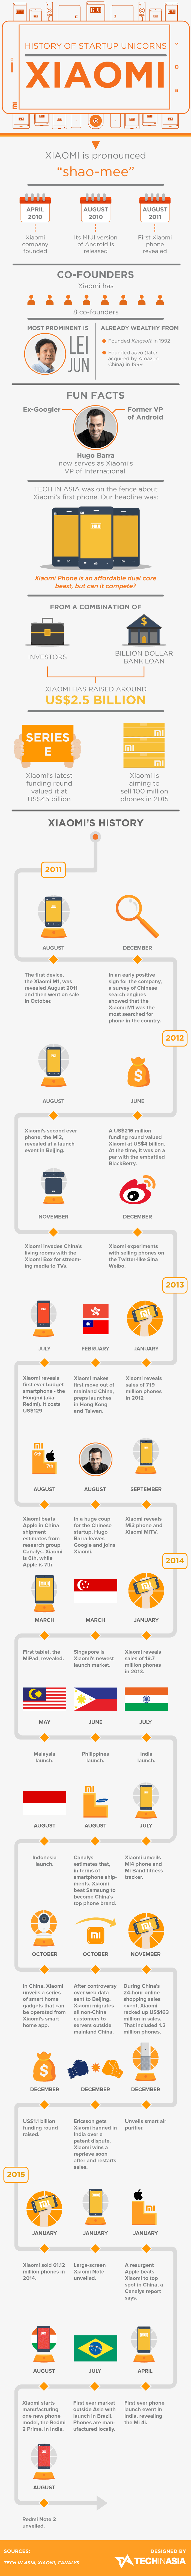 Inspiring Startup Story Xiaomi Mobile Phone Company - Infographic